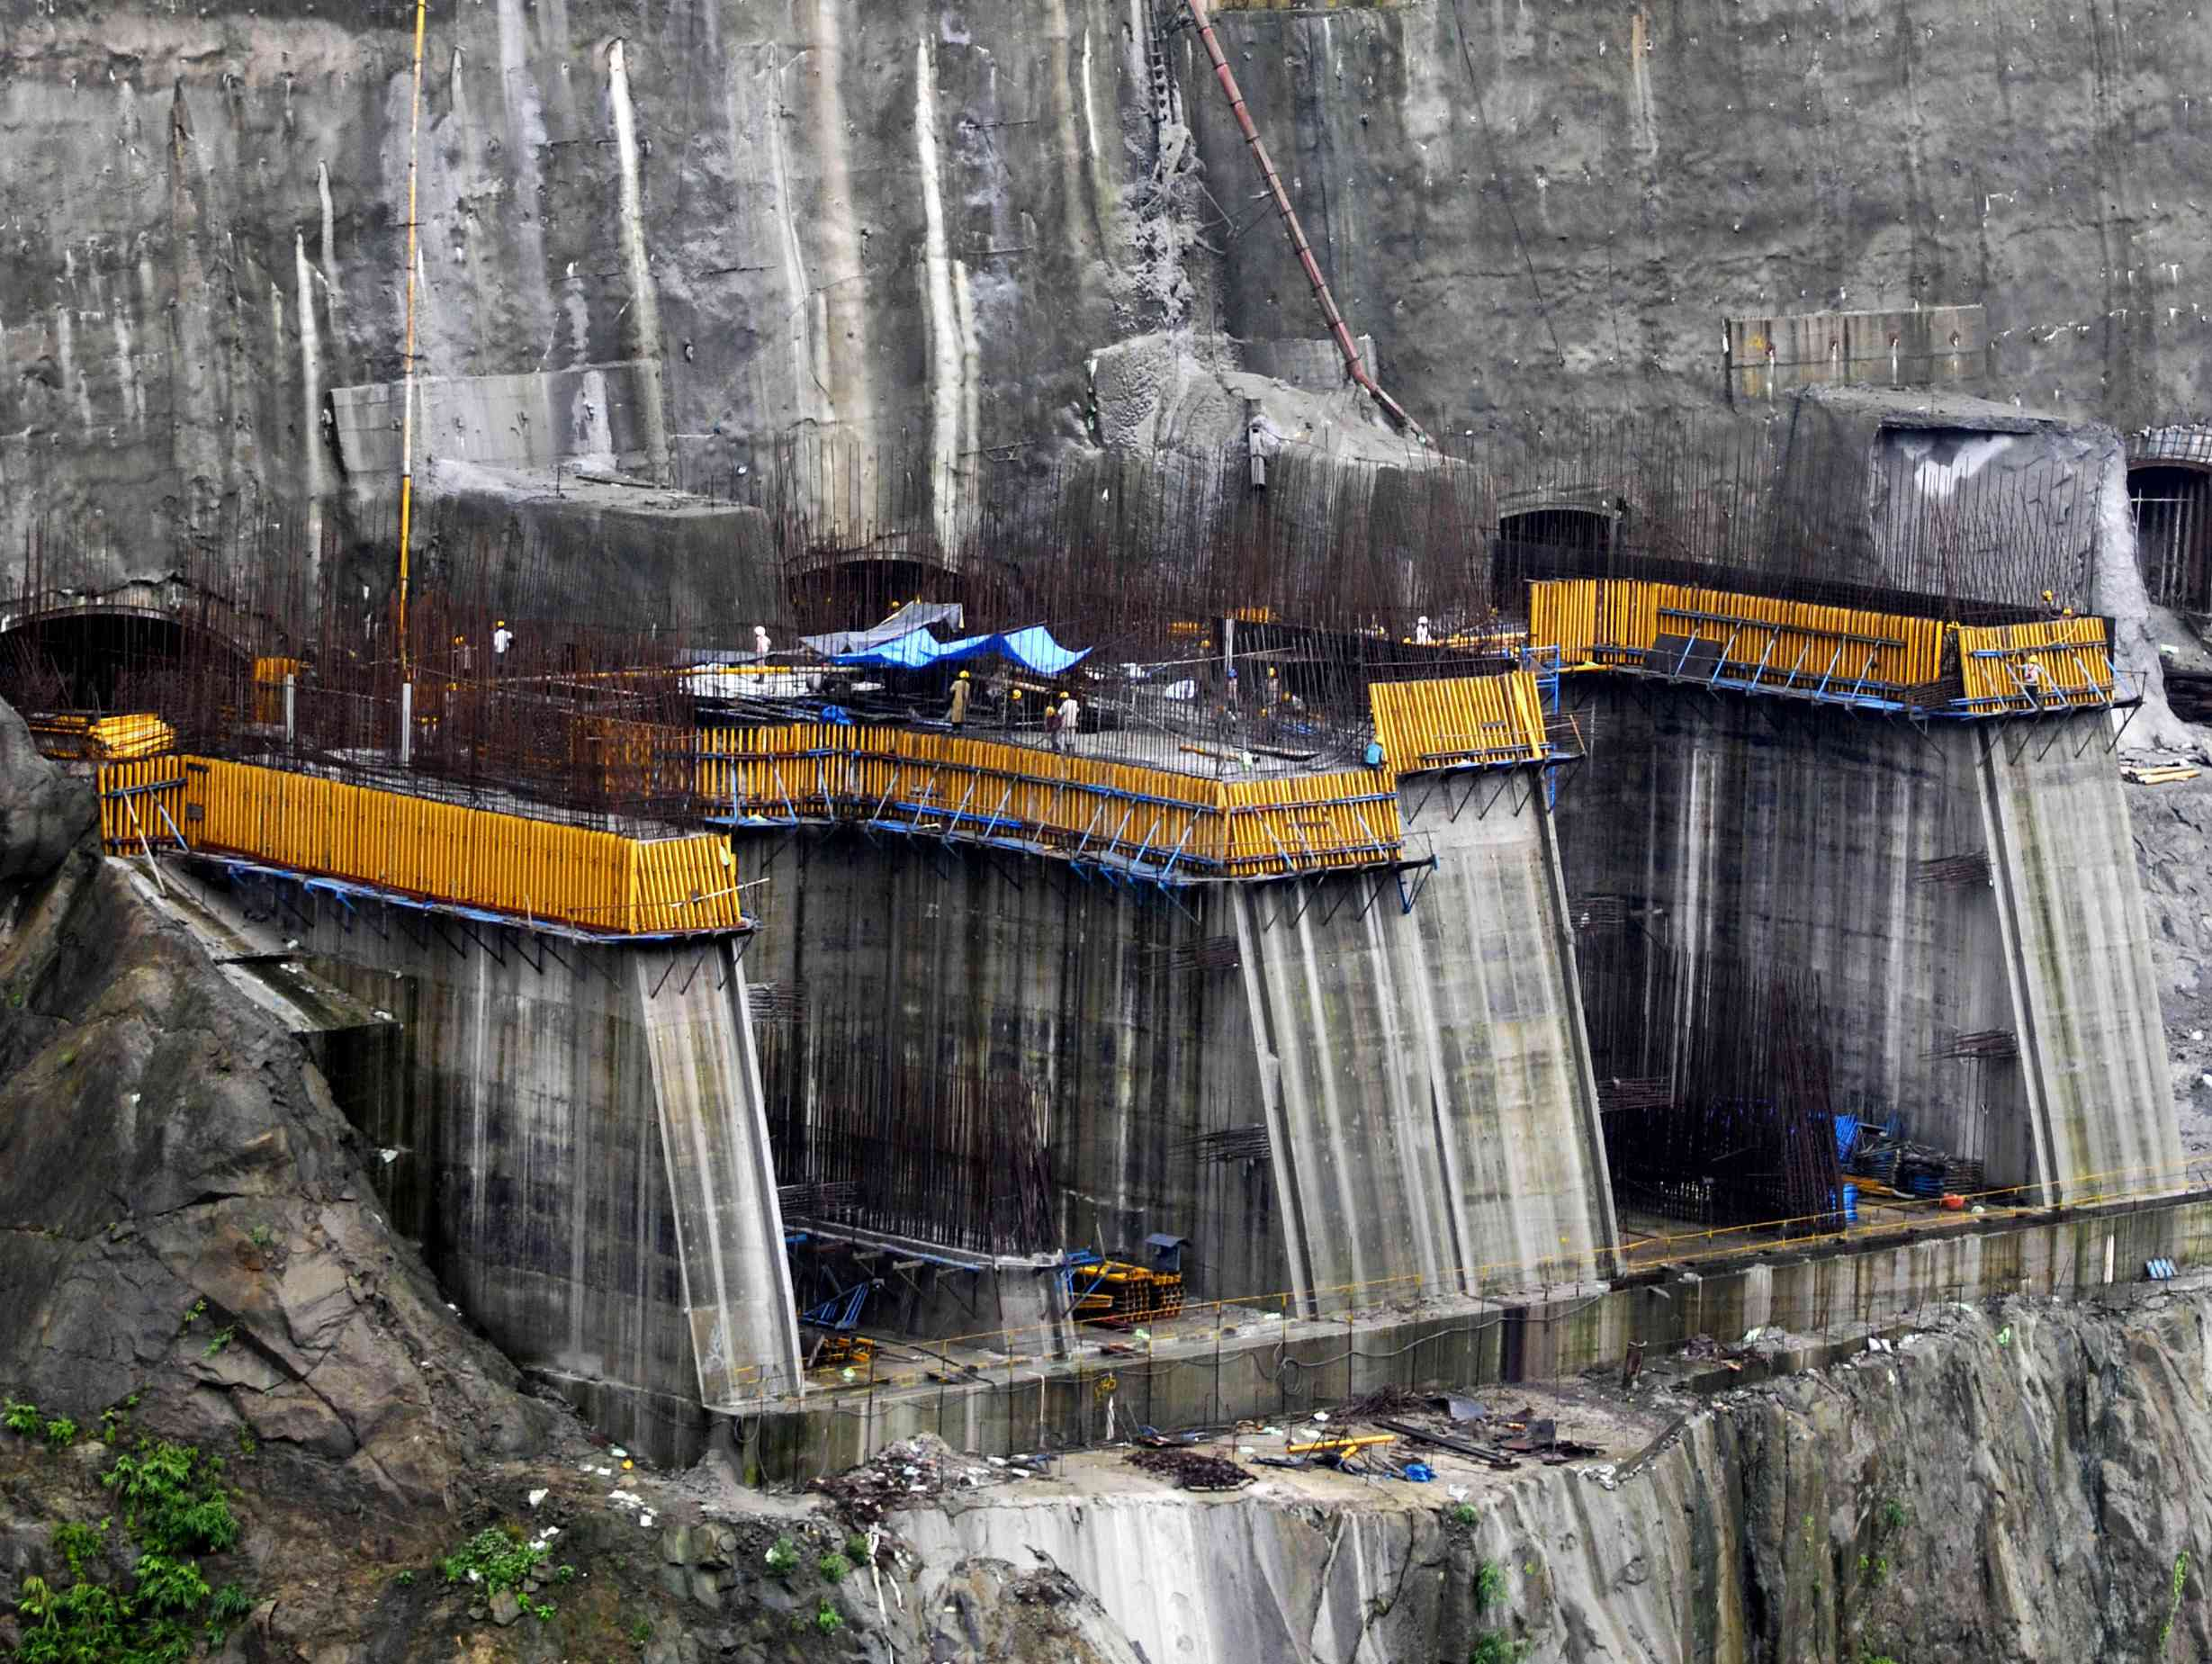 The environmental impact assessment for the Subansiri dam project on the Arunachal Pradesh-Assam border reportedly did not follow due process. (Credit: AFP)